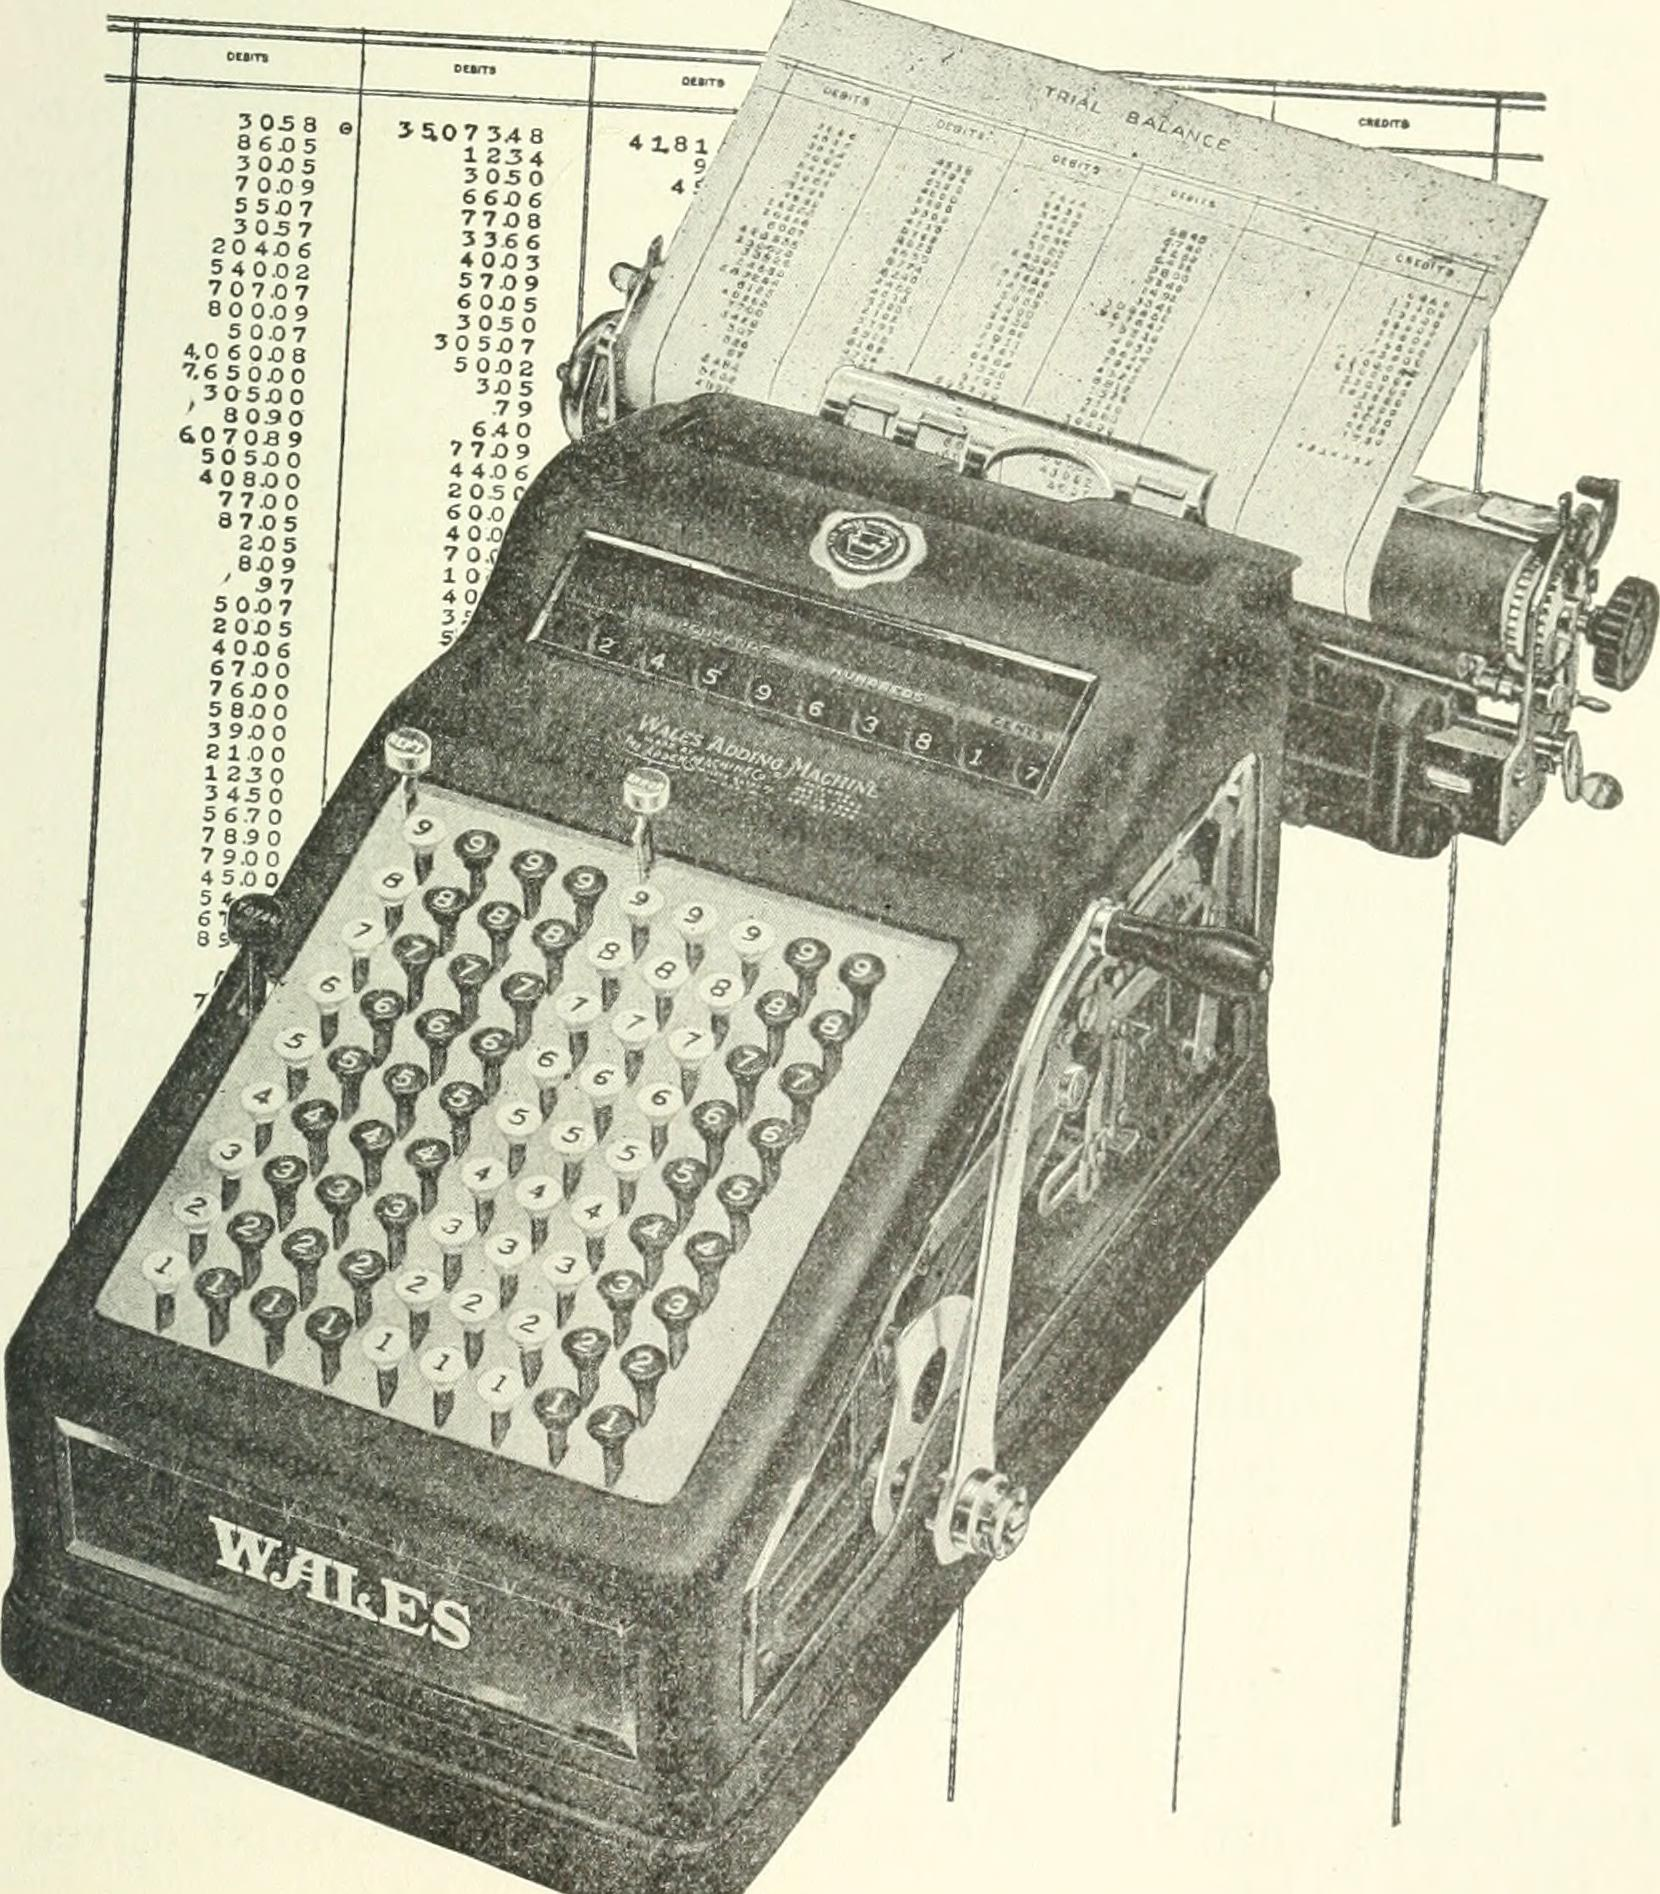 Illustration of an analog numeric typewriter, superimposed on a paper chart of printed numbers.